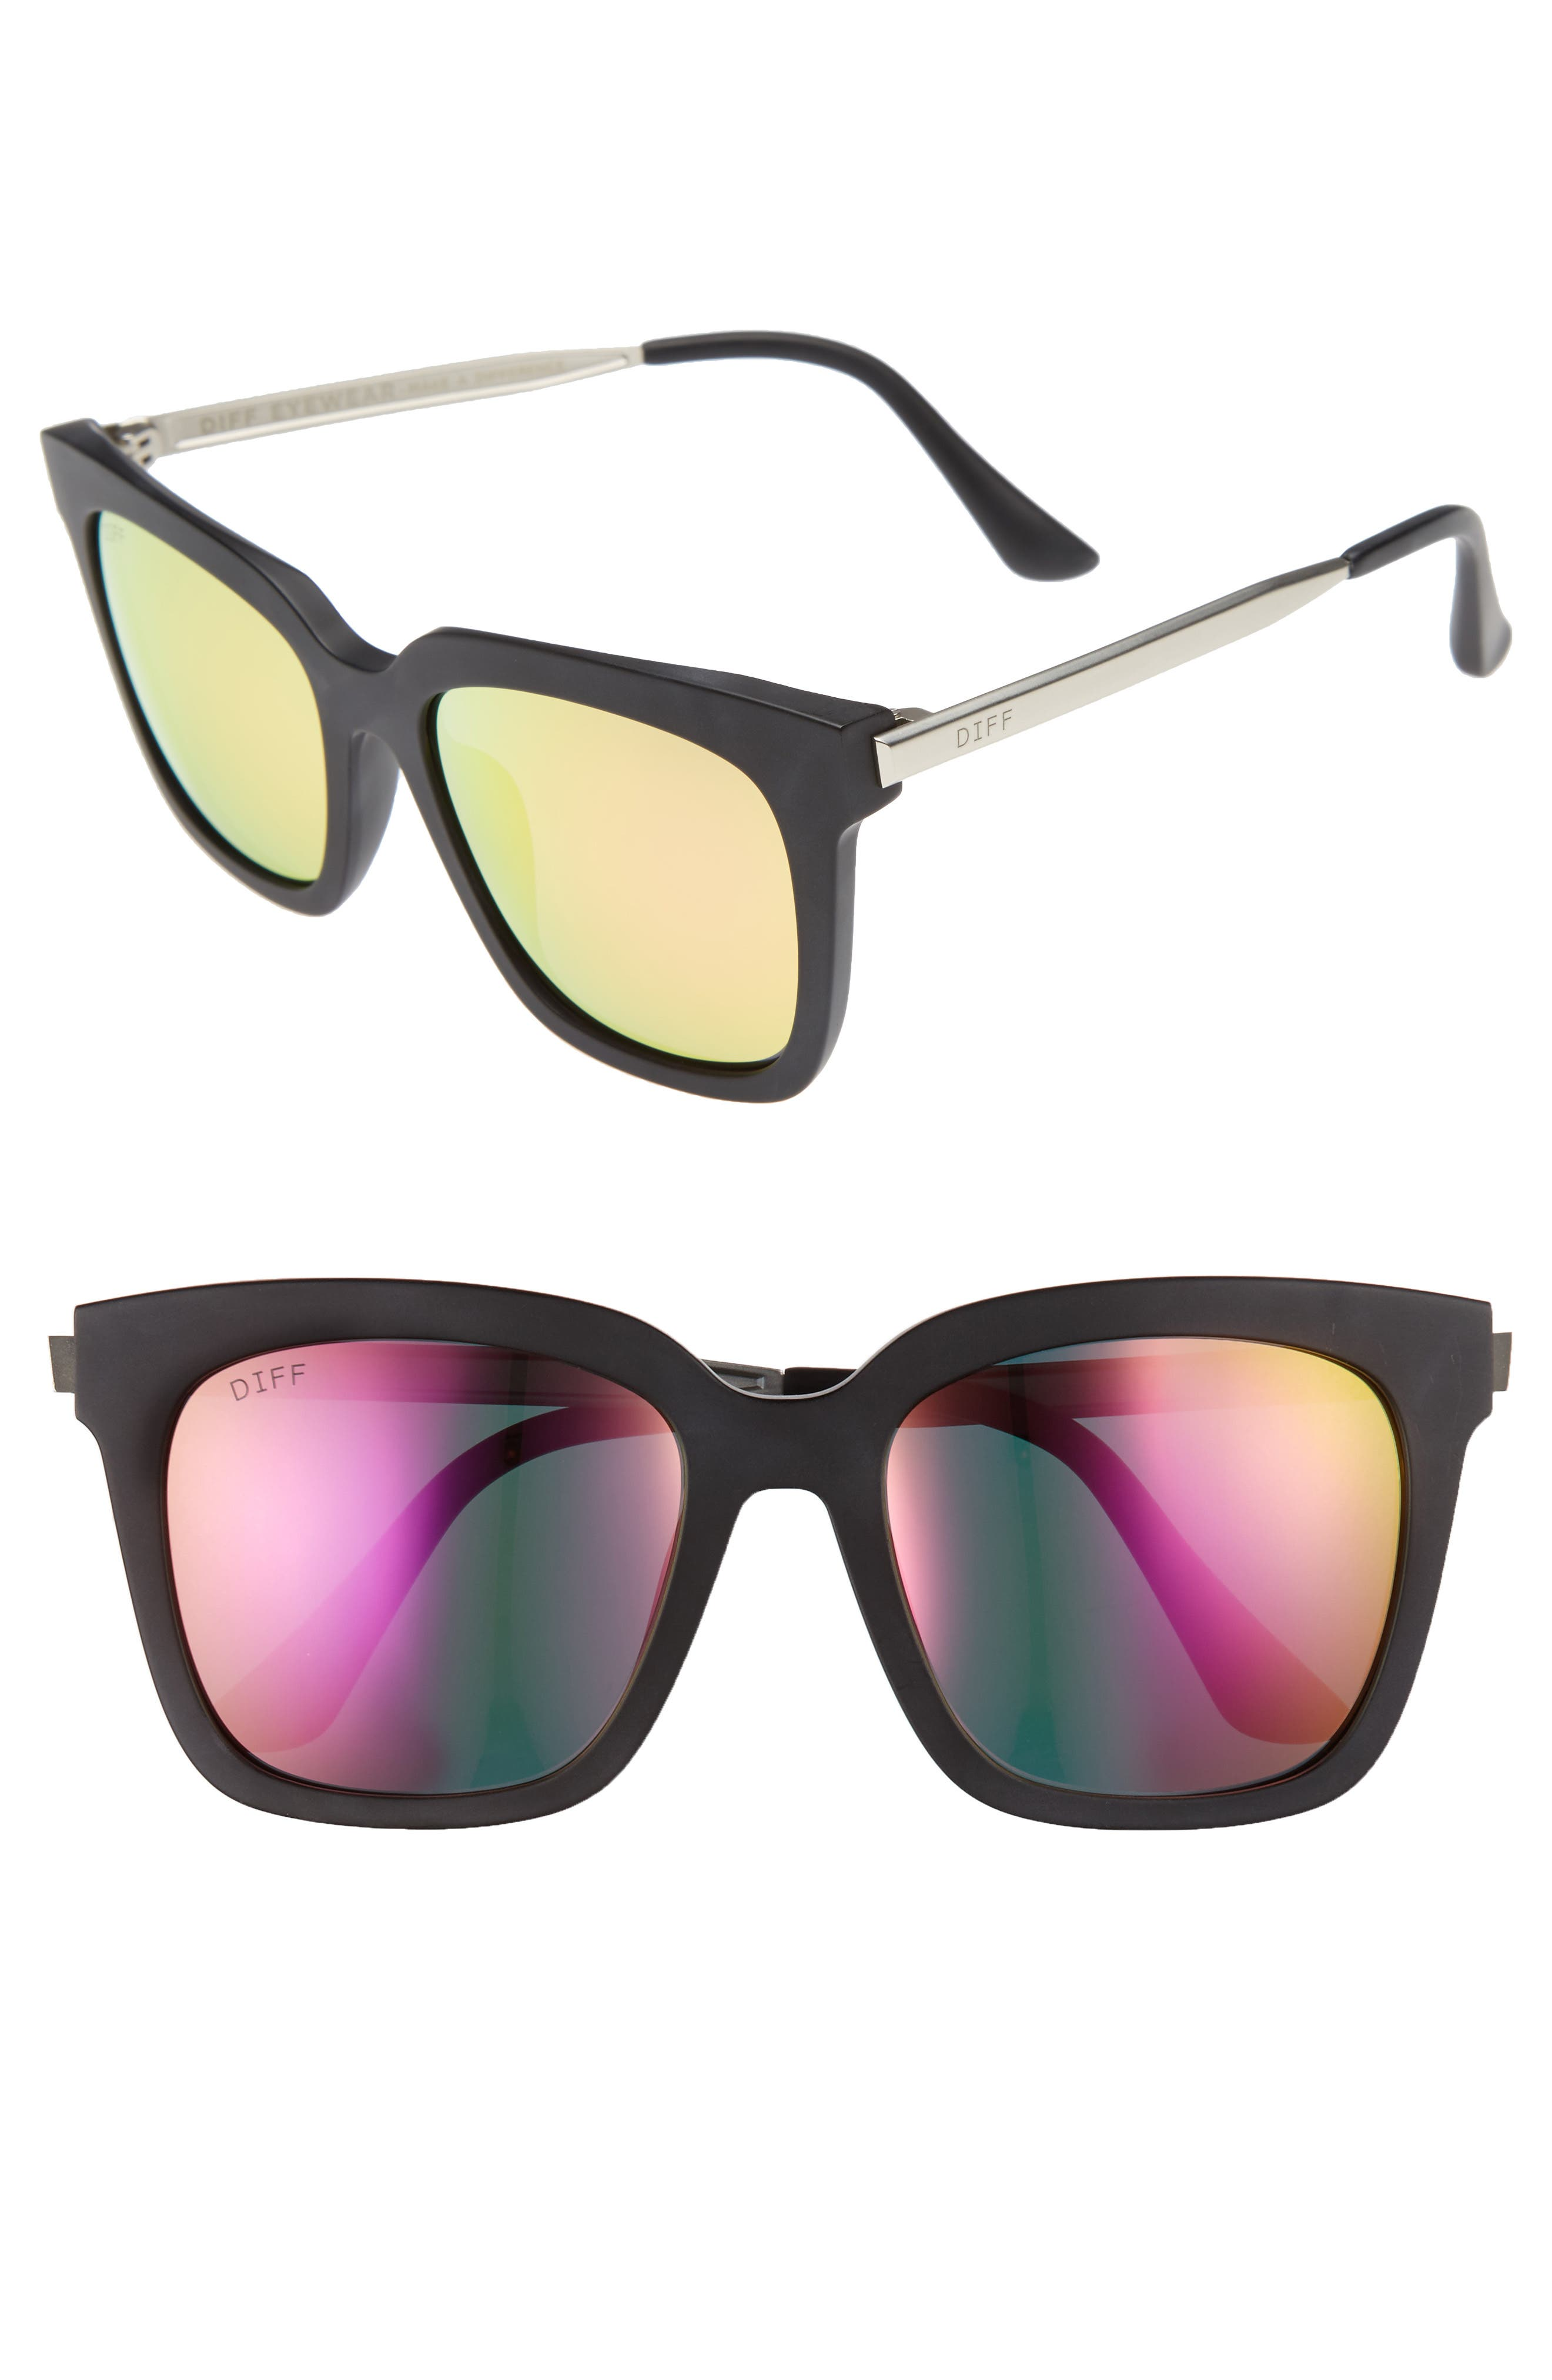 DIFF Bella 52mm Polarized Sunglasses